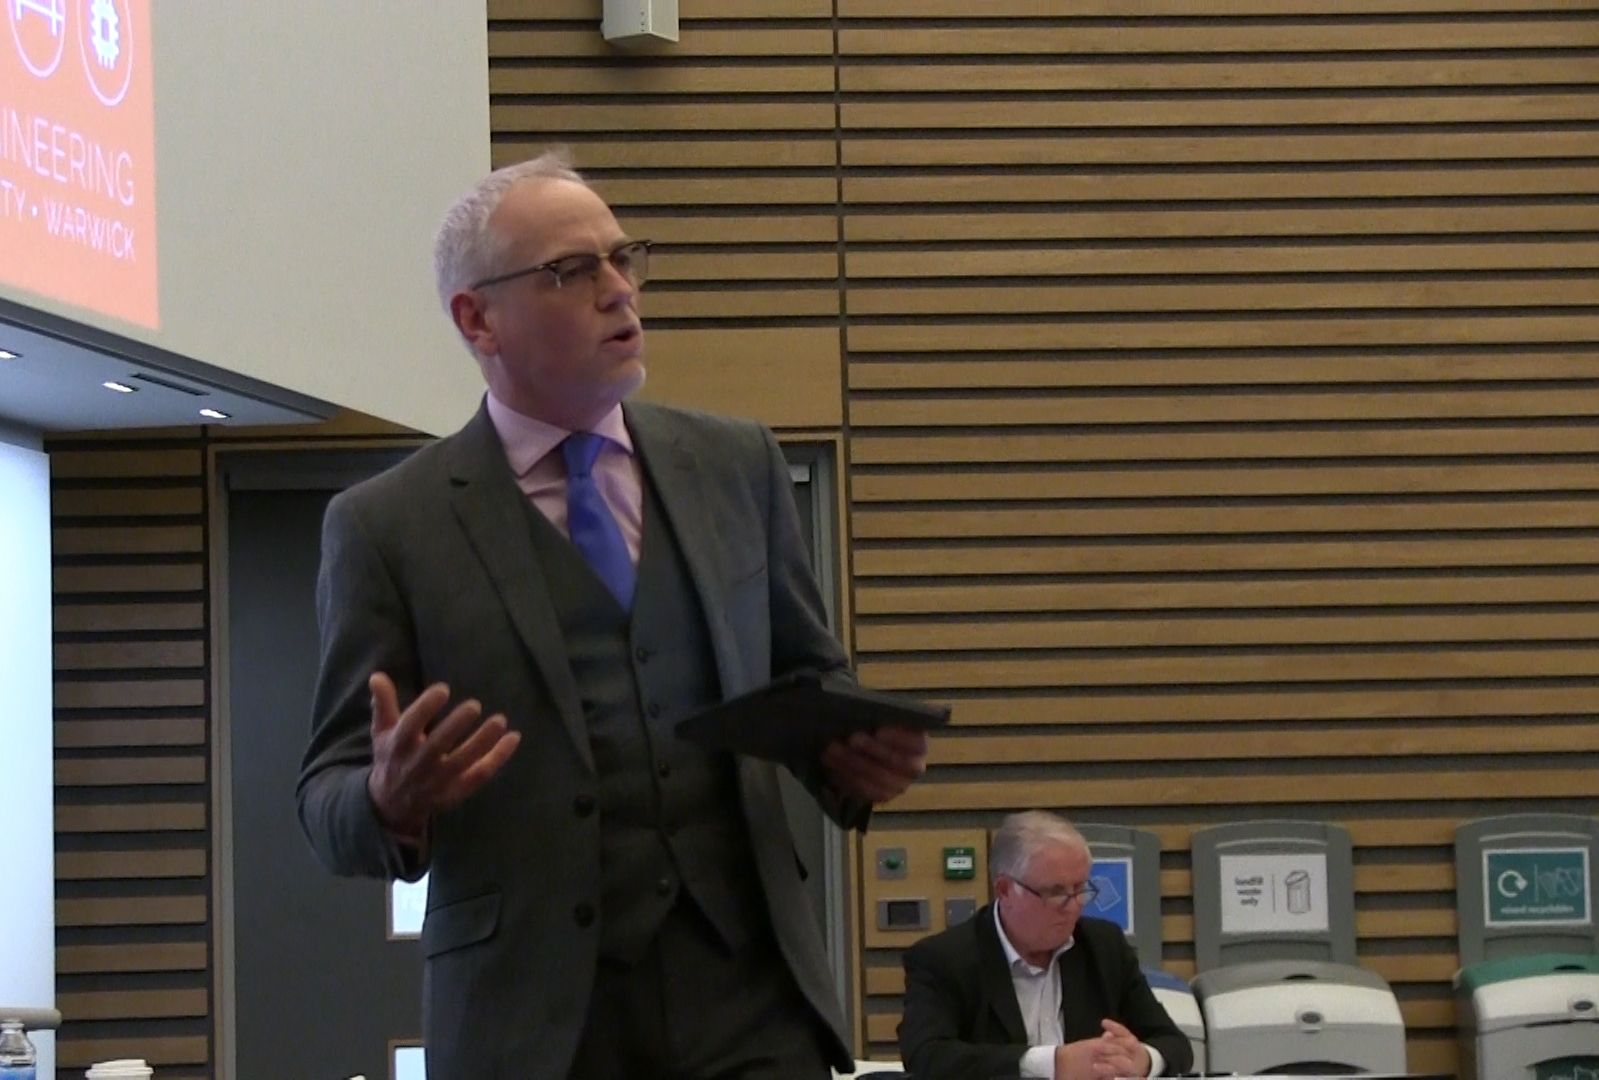 Professor Colin Williams makes his case during the debate